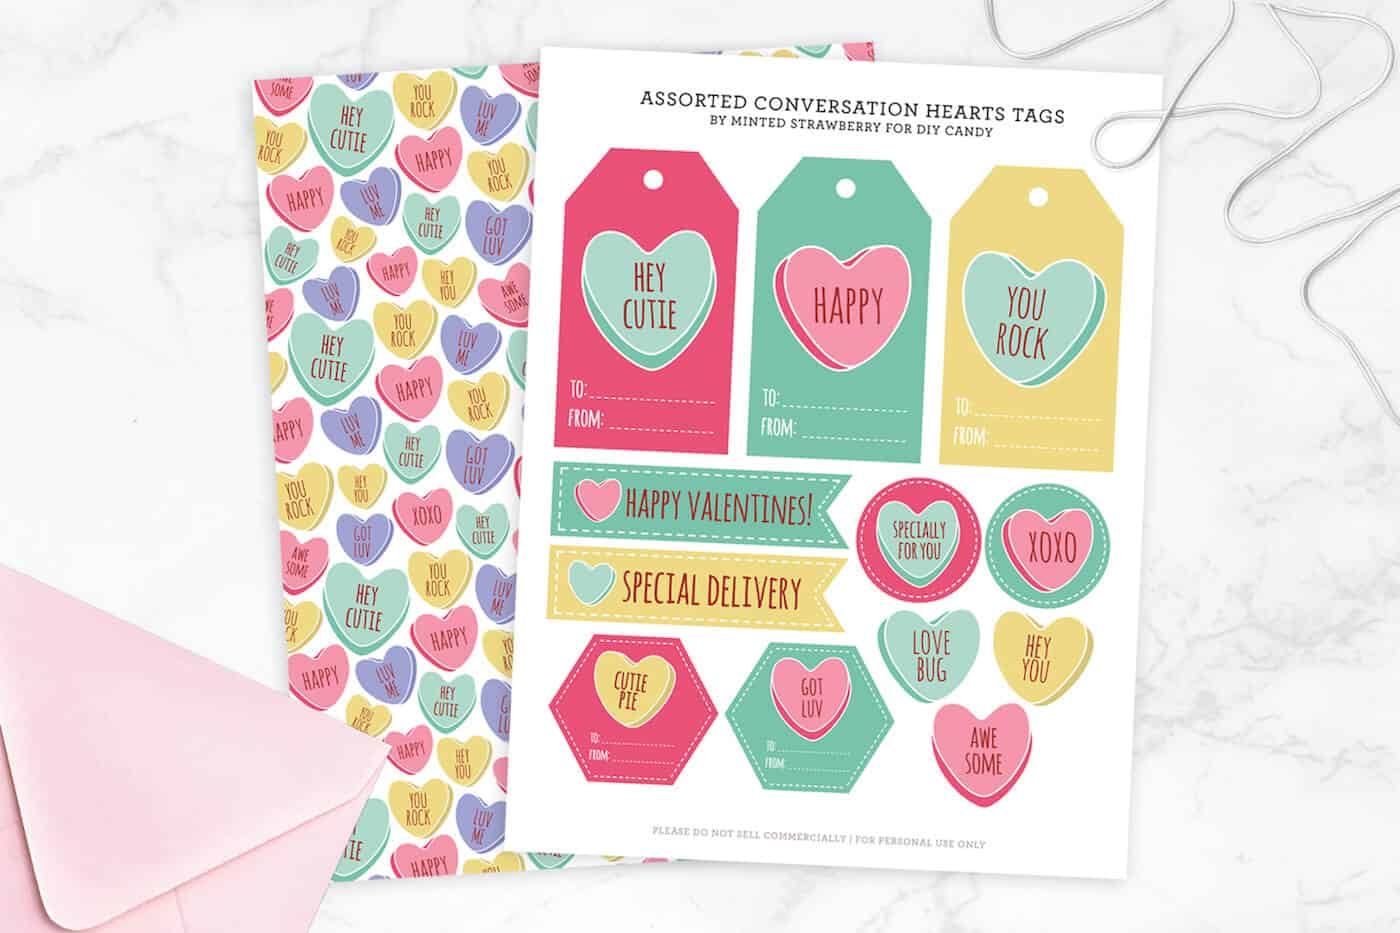 graphic about You Rock Valentine Printable called Communication Center Valentine Tags and Present Wrap - Do-it-yourself Sweet